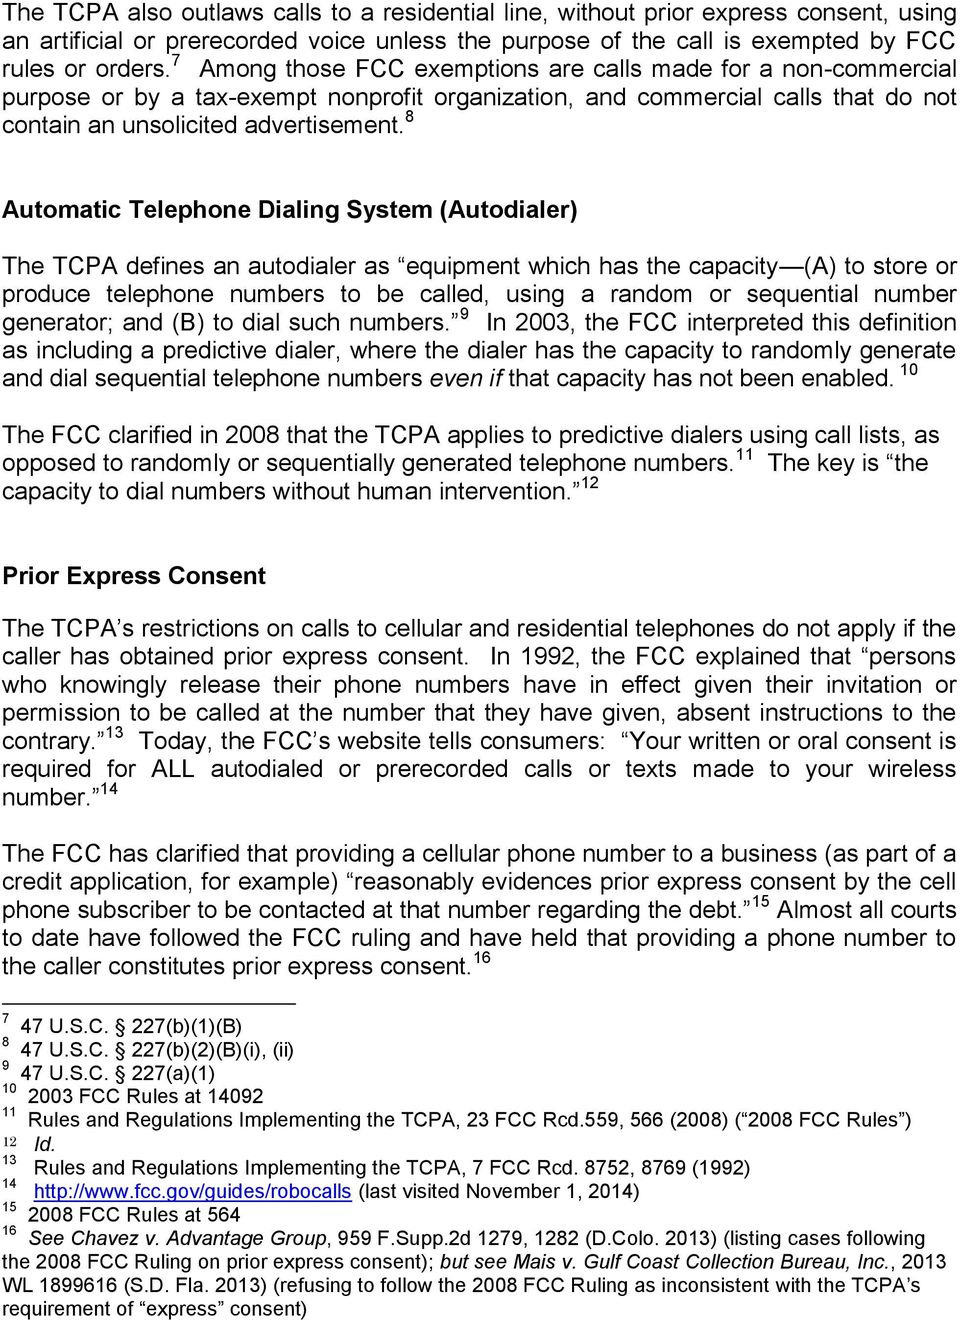 8 Automatic Telephone Dialing System (Autodialer) The TCPA defines an autodialer as equipment which has the capacity (A) to store or produce telephone numbers to be called, using a random or